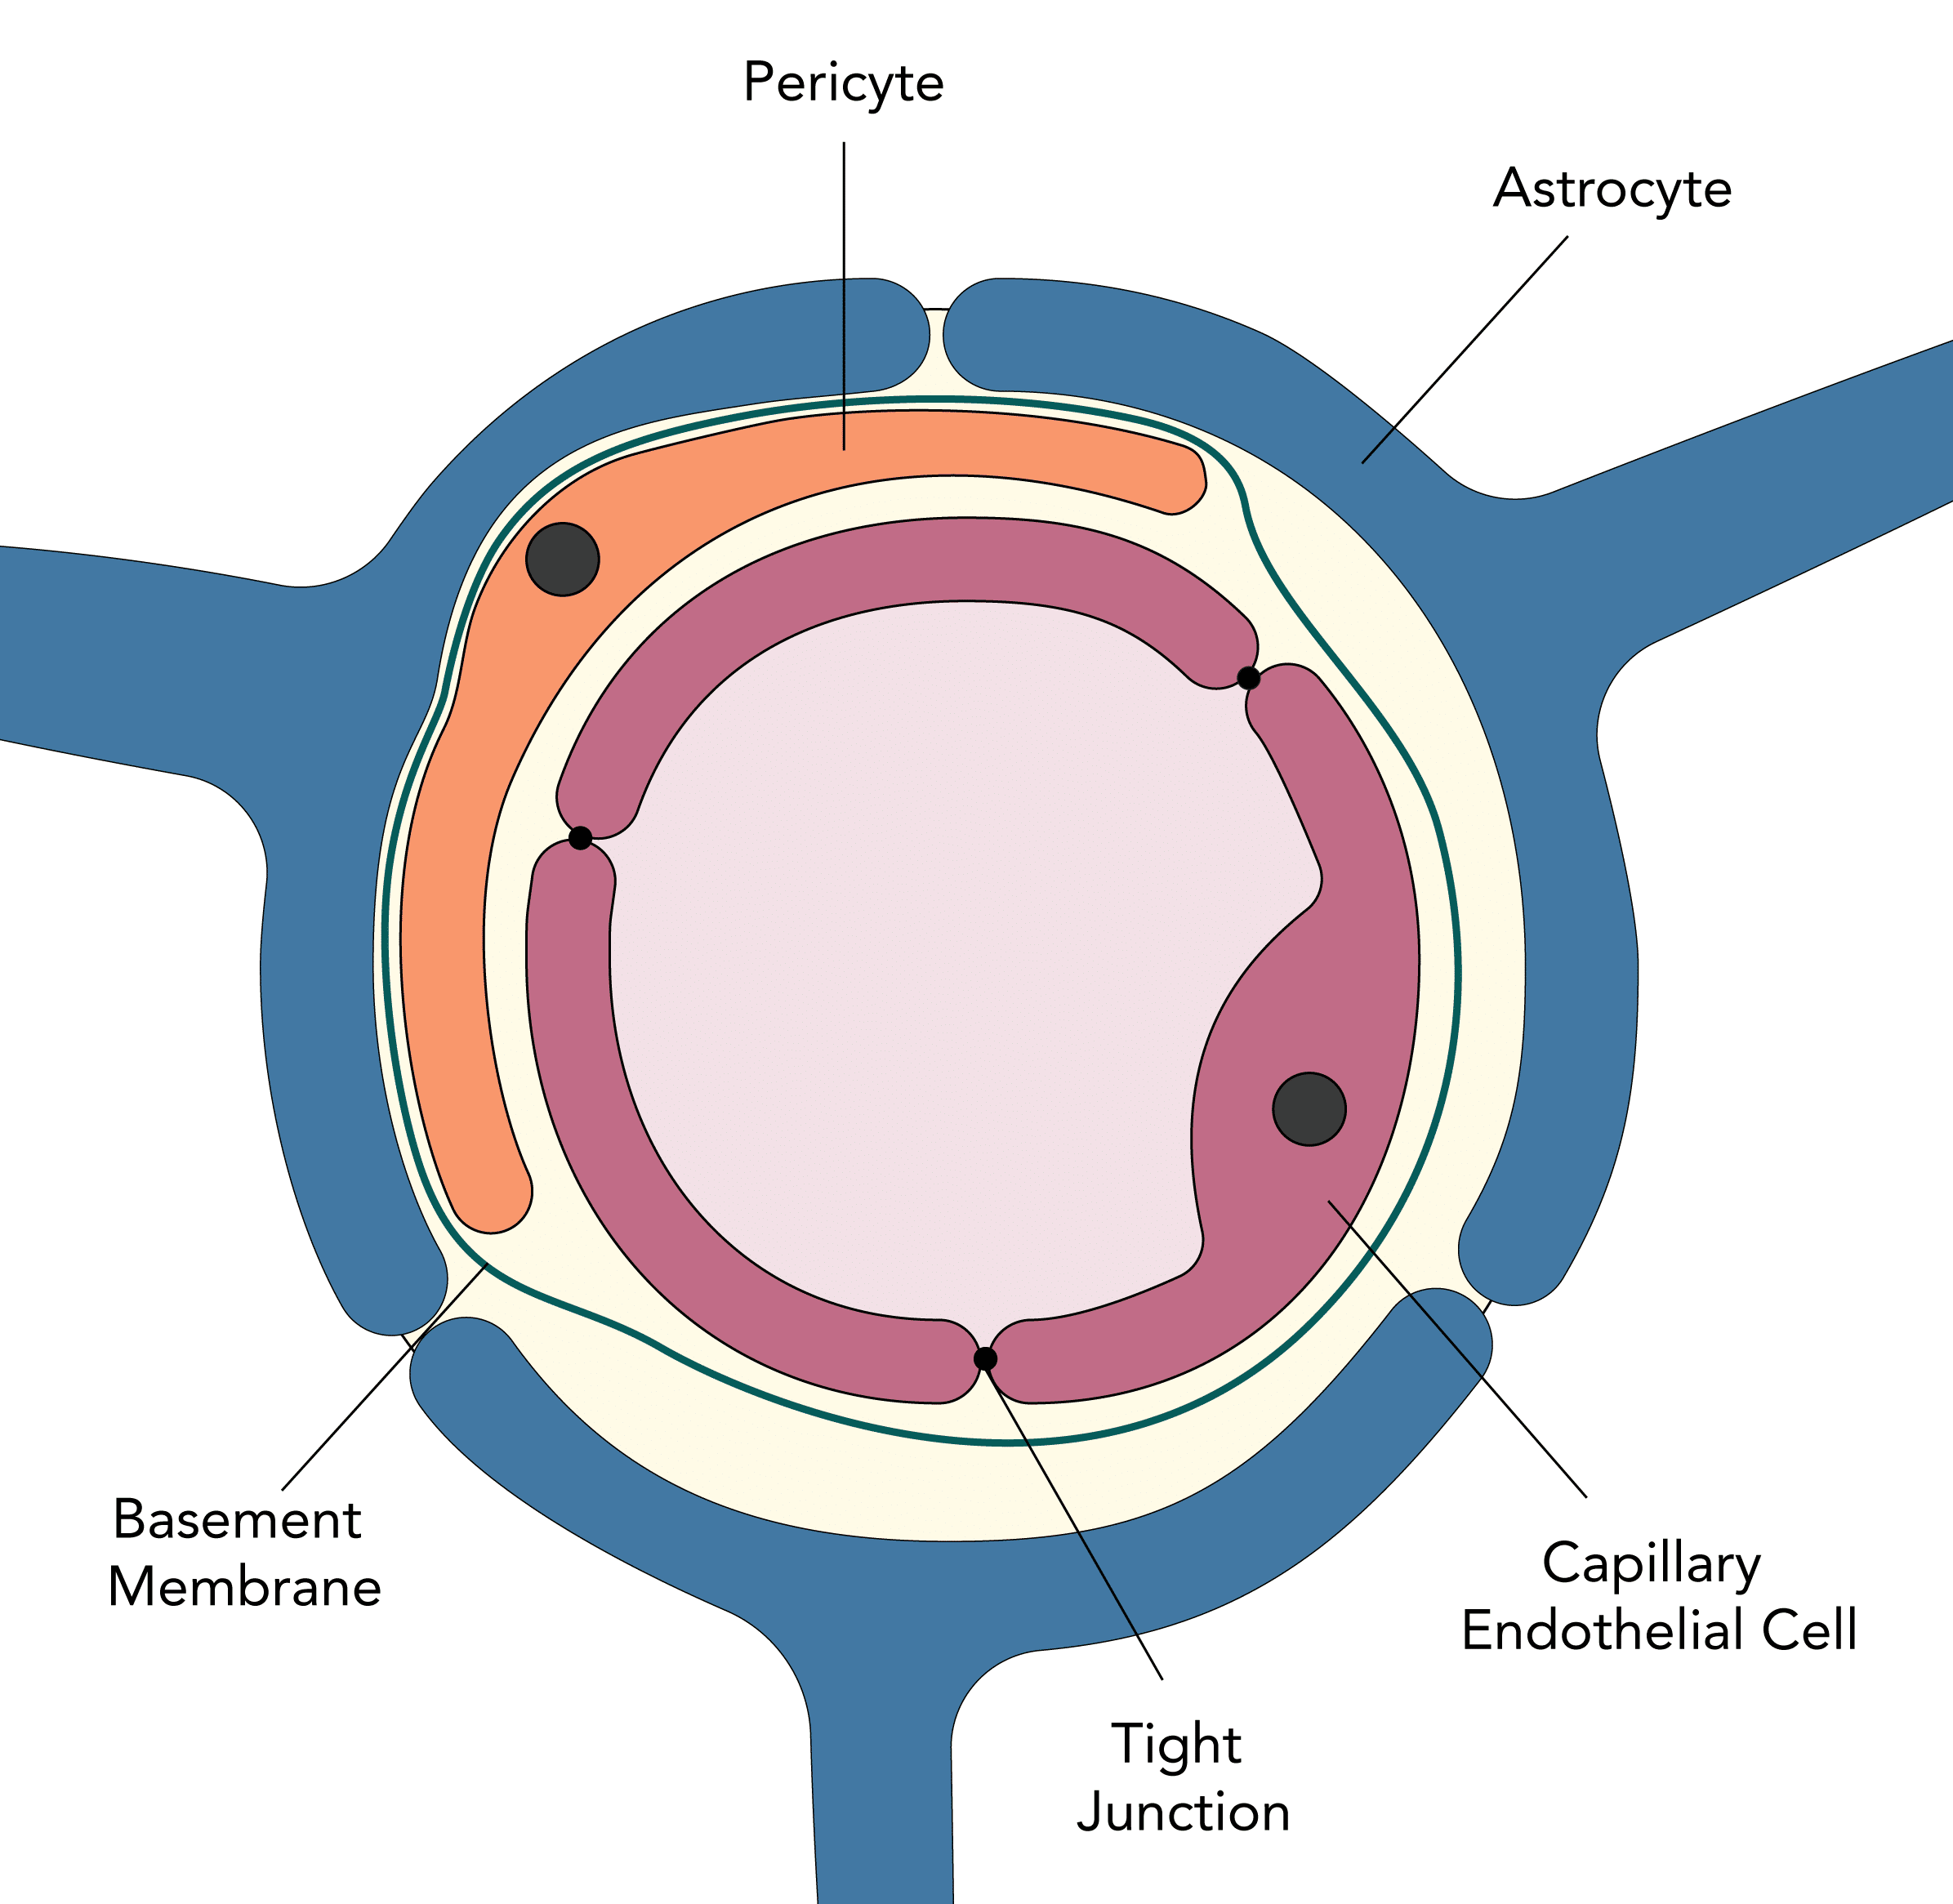 Structure of the blood brain barrier